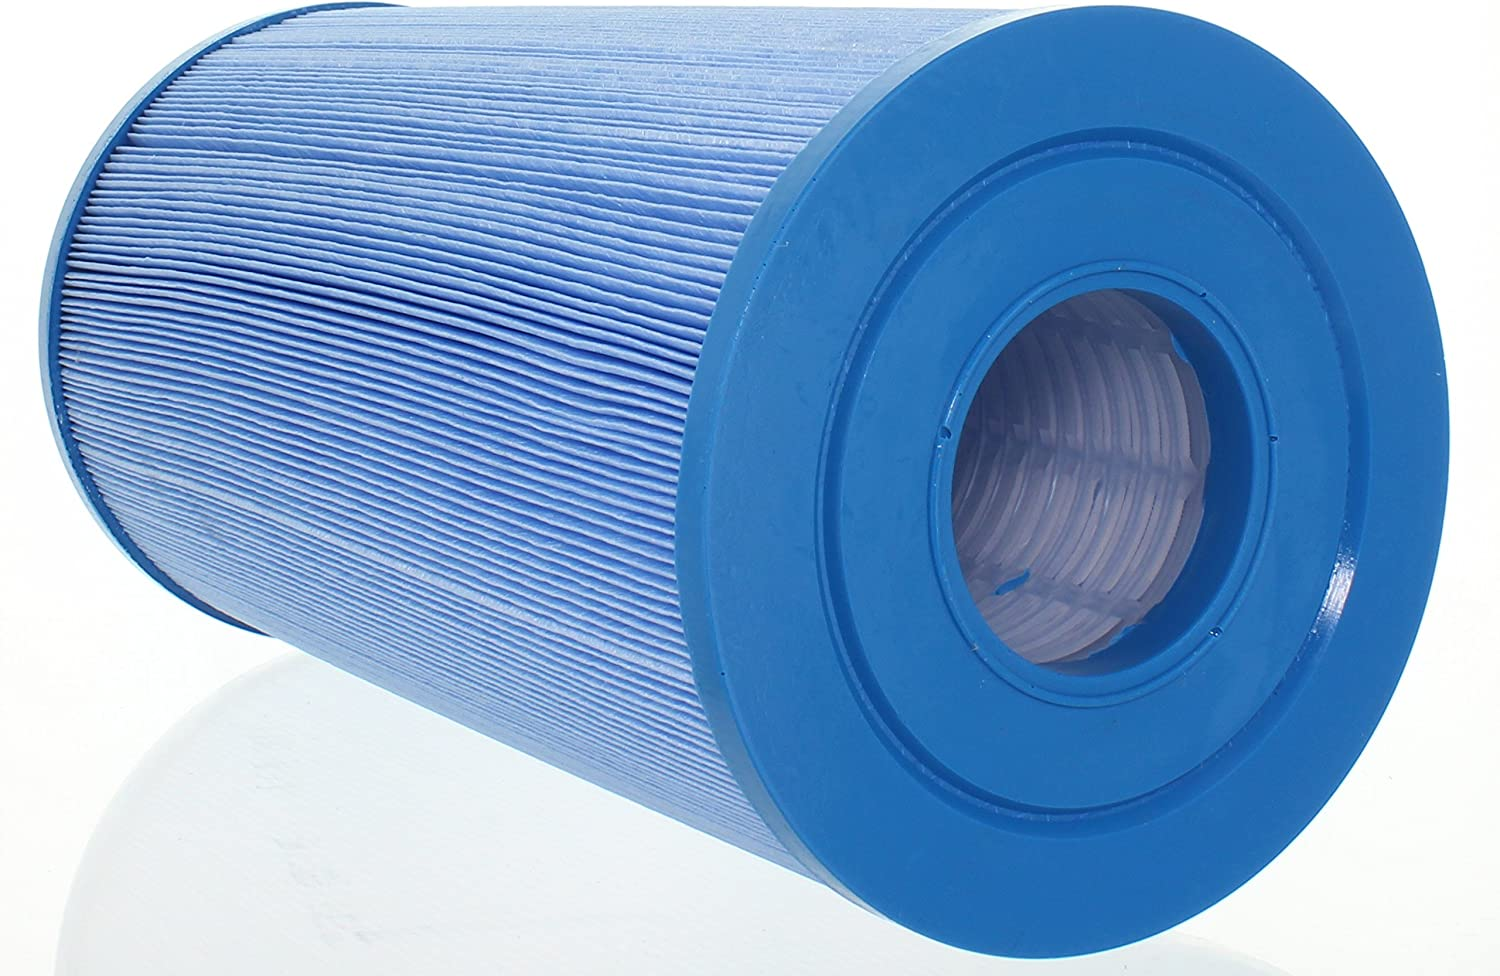 Guardian Filters 510-230M Filter Pack of 1